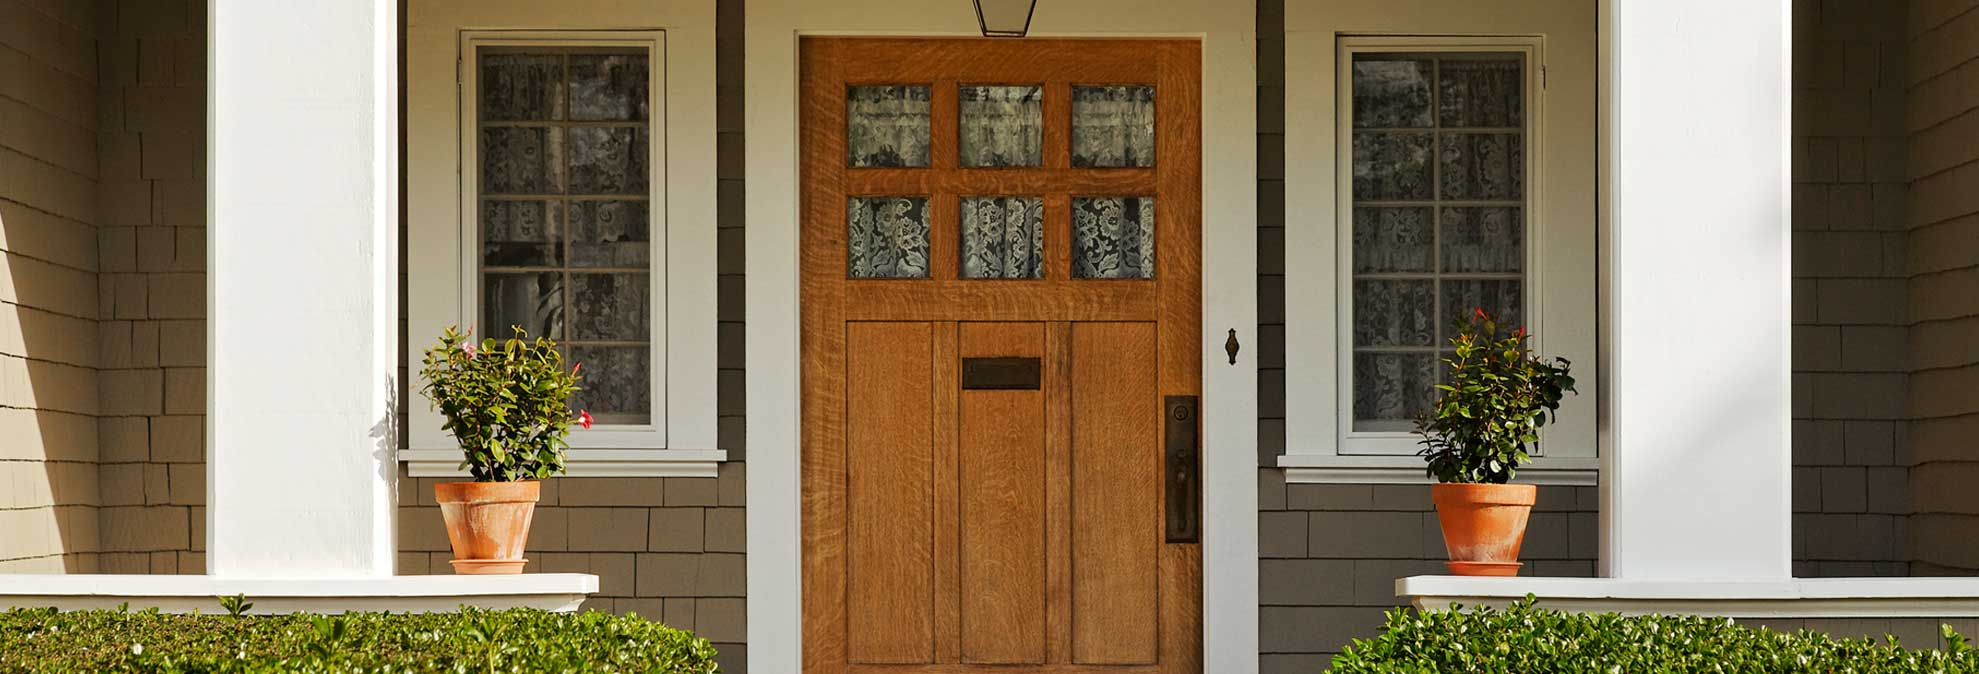 nice photos of entry doors #1: Consumer Reports